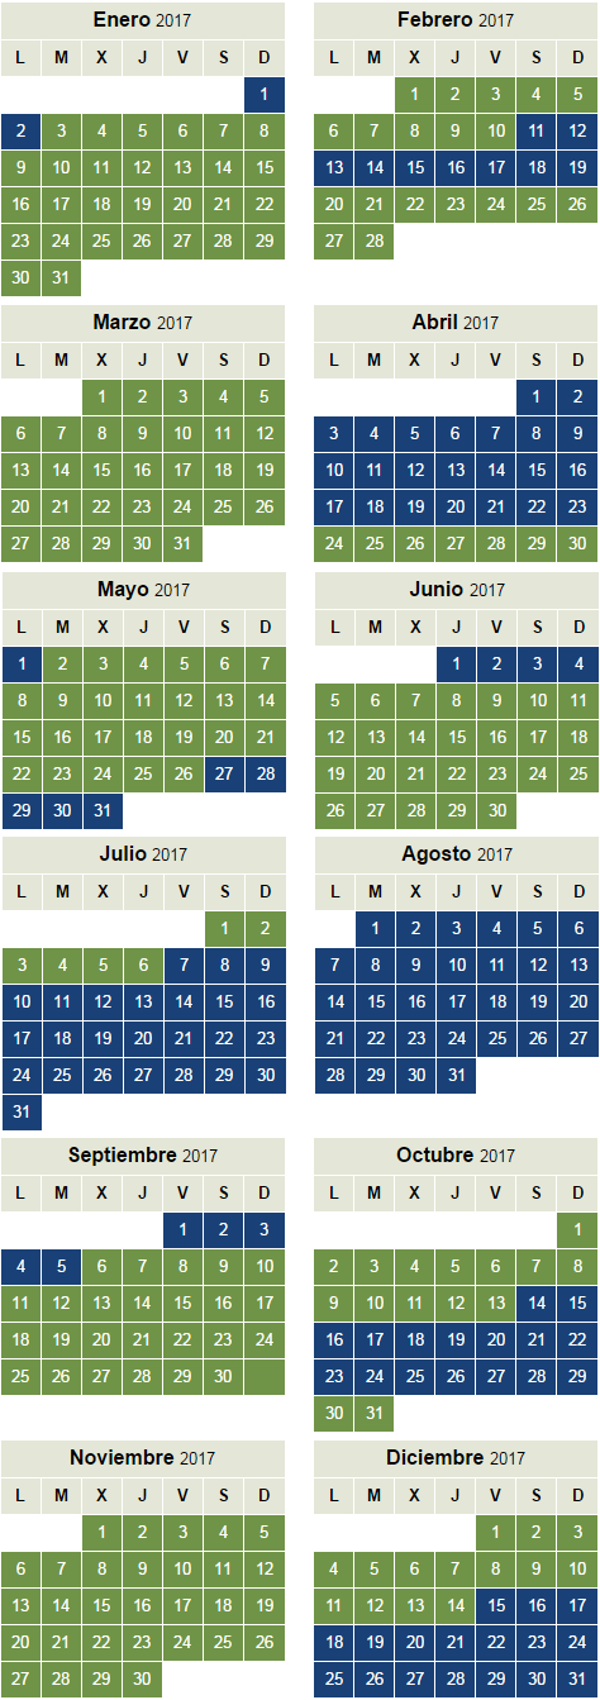 Calendario de Temporada Baja (en verde) y Alta (en azul) de British Airways